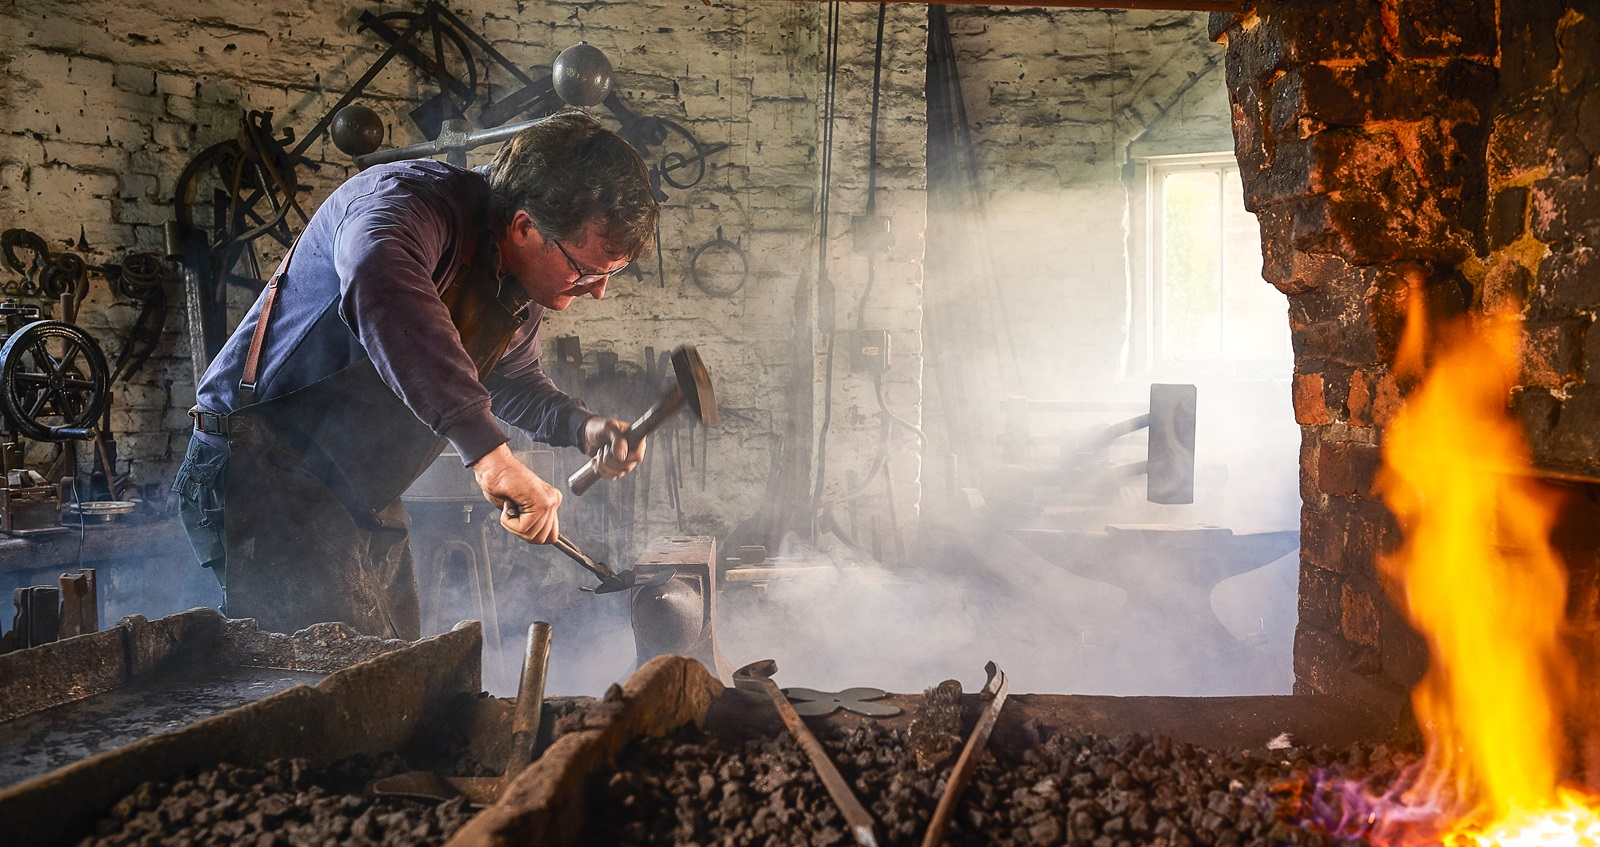 Man working as a blacksmith